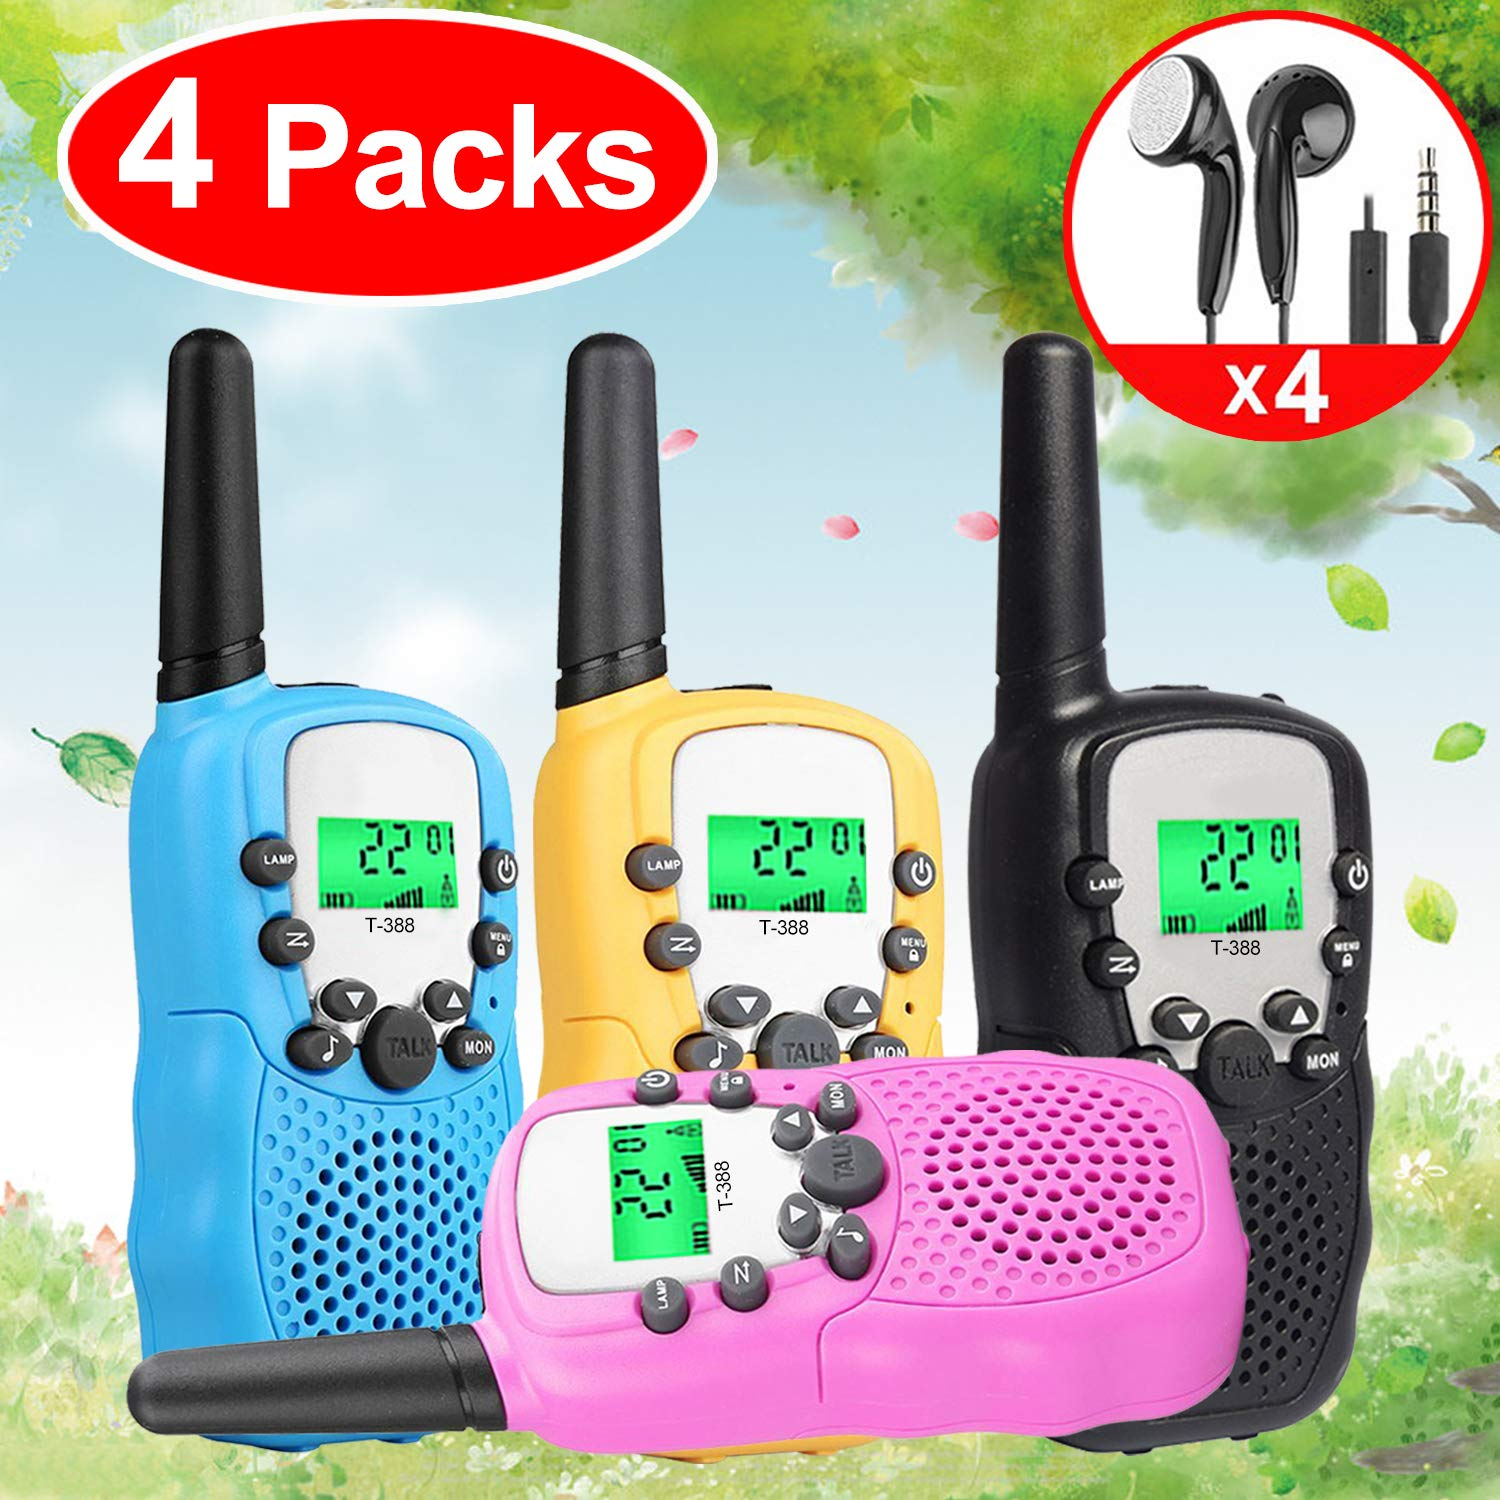 Kids Walkie Talkies Toys for 3-12 Year Old Boys Girls Toddlers, 4 Pack Walkie Talkies with 4 Earphones, 3 Mile Range 22 Channel Flashlight Two-Way Radio, Accessory for Outdoor Adventure Camping Game by iGeeKid (Image #9)